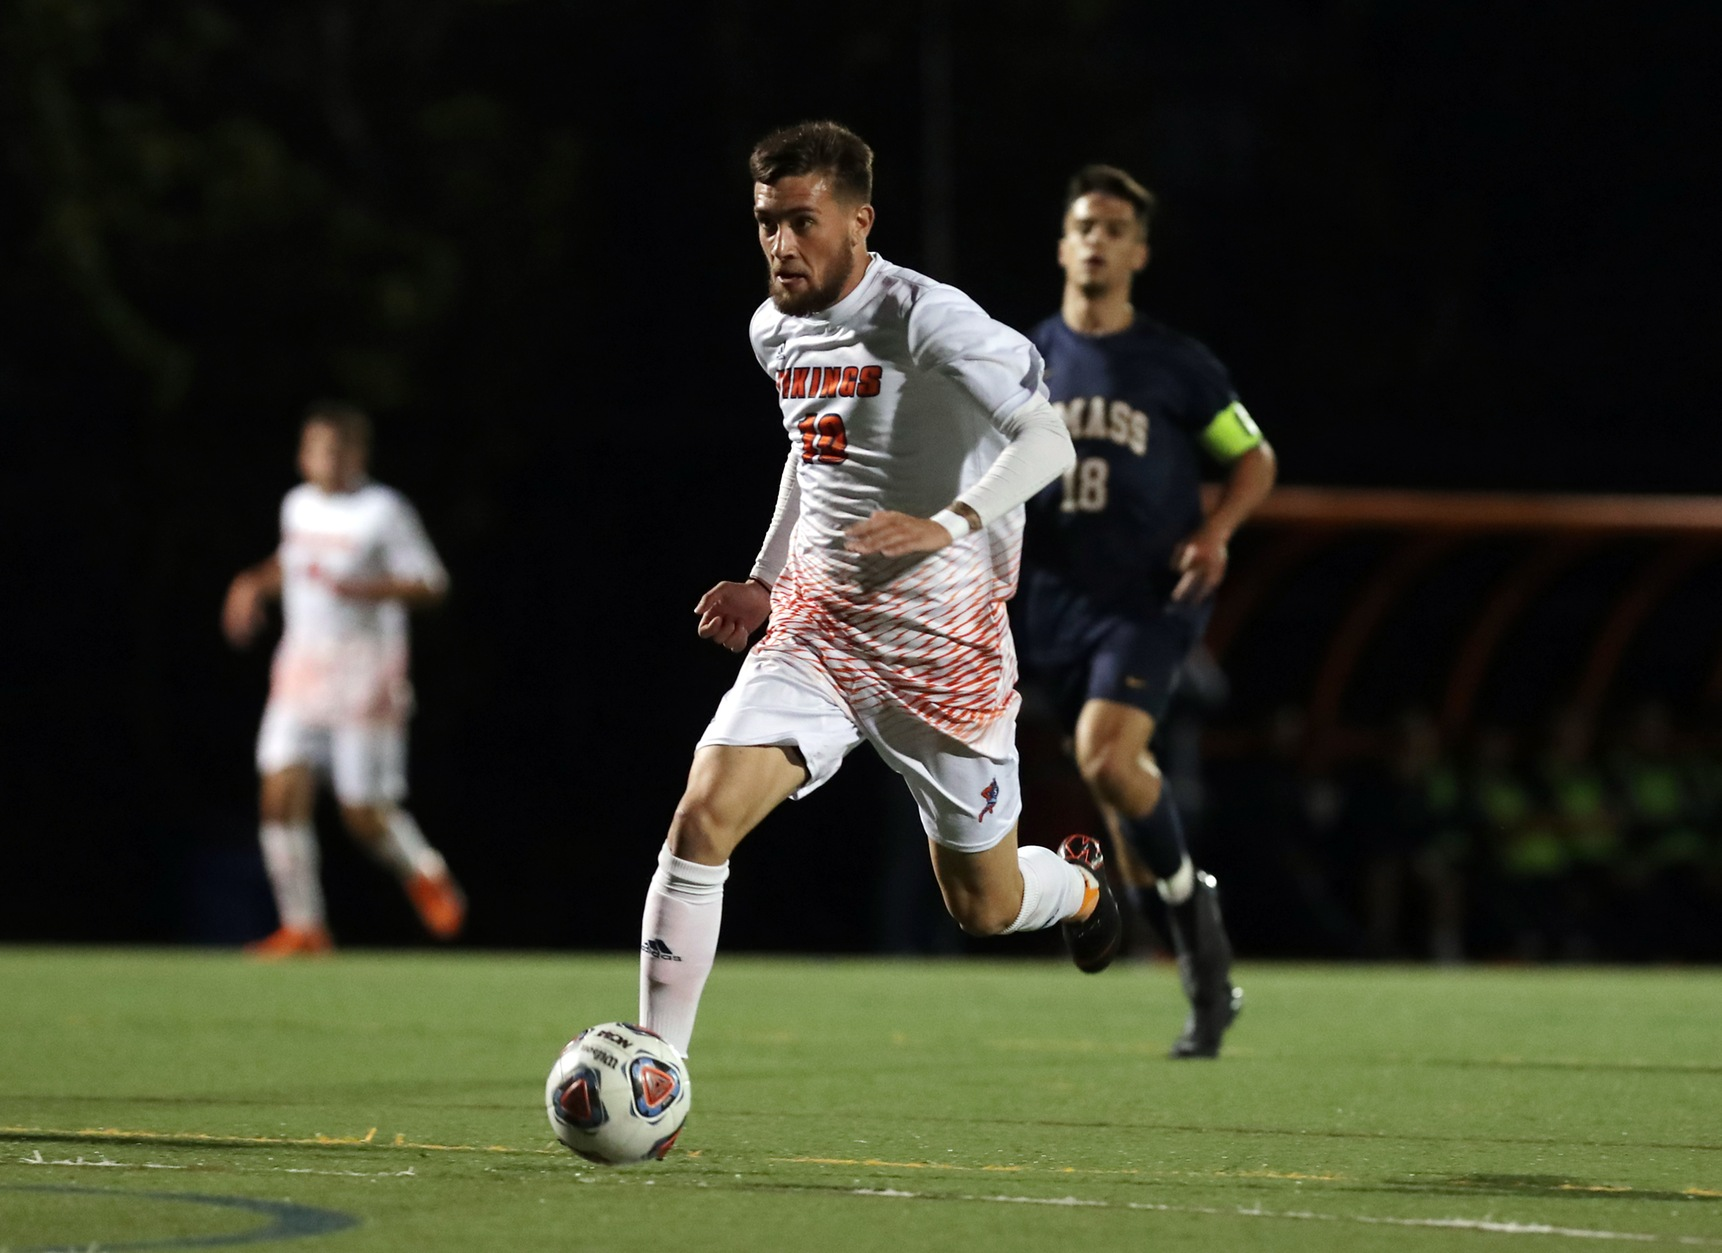 #2 Bridgewater State Gets Past #3 Salem State in MASCAC Semifinal Shootout